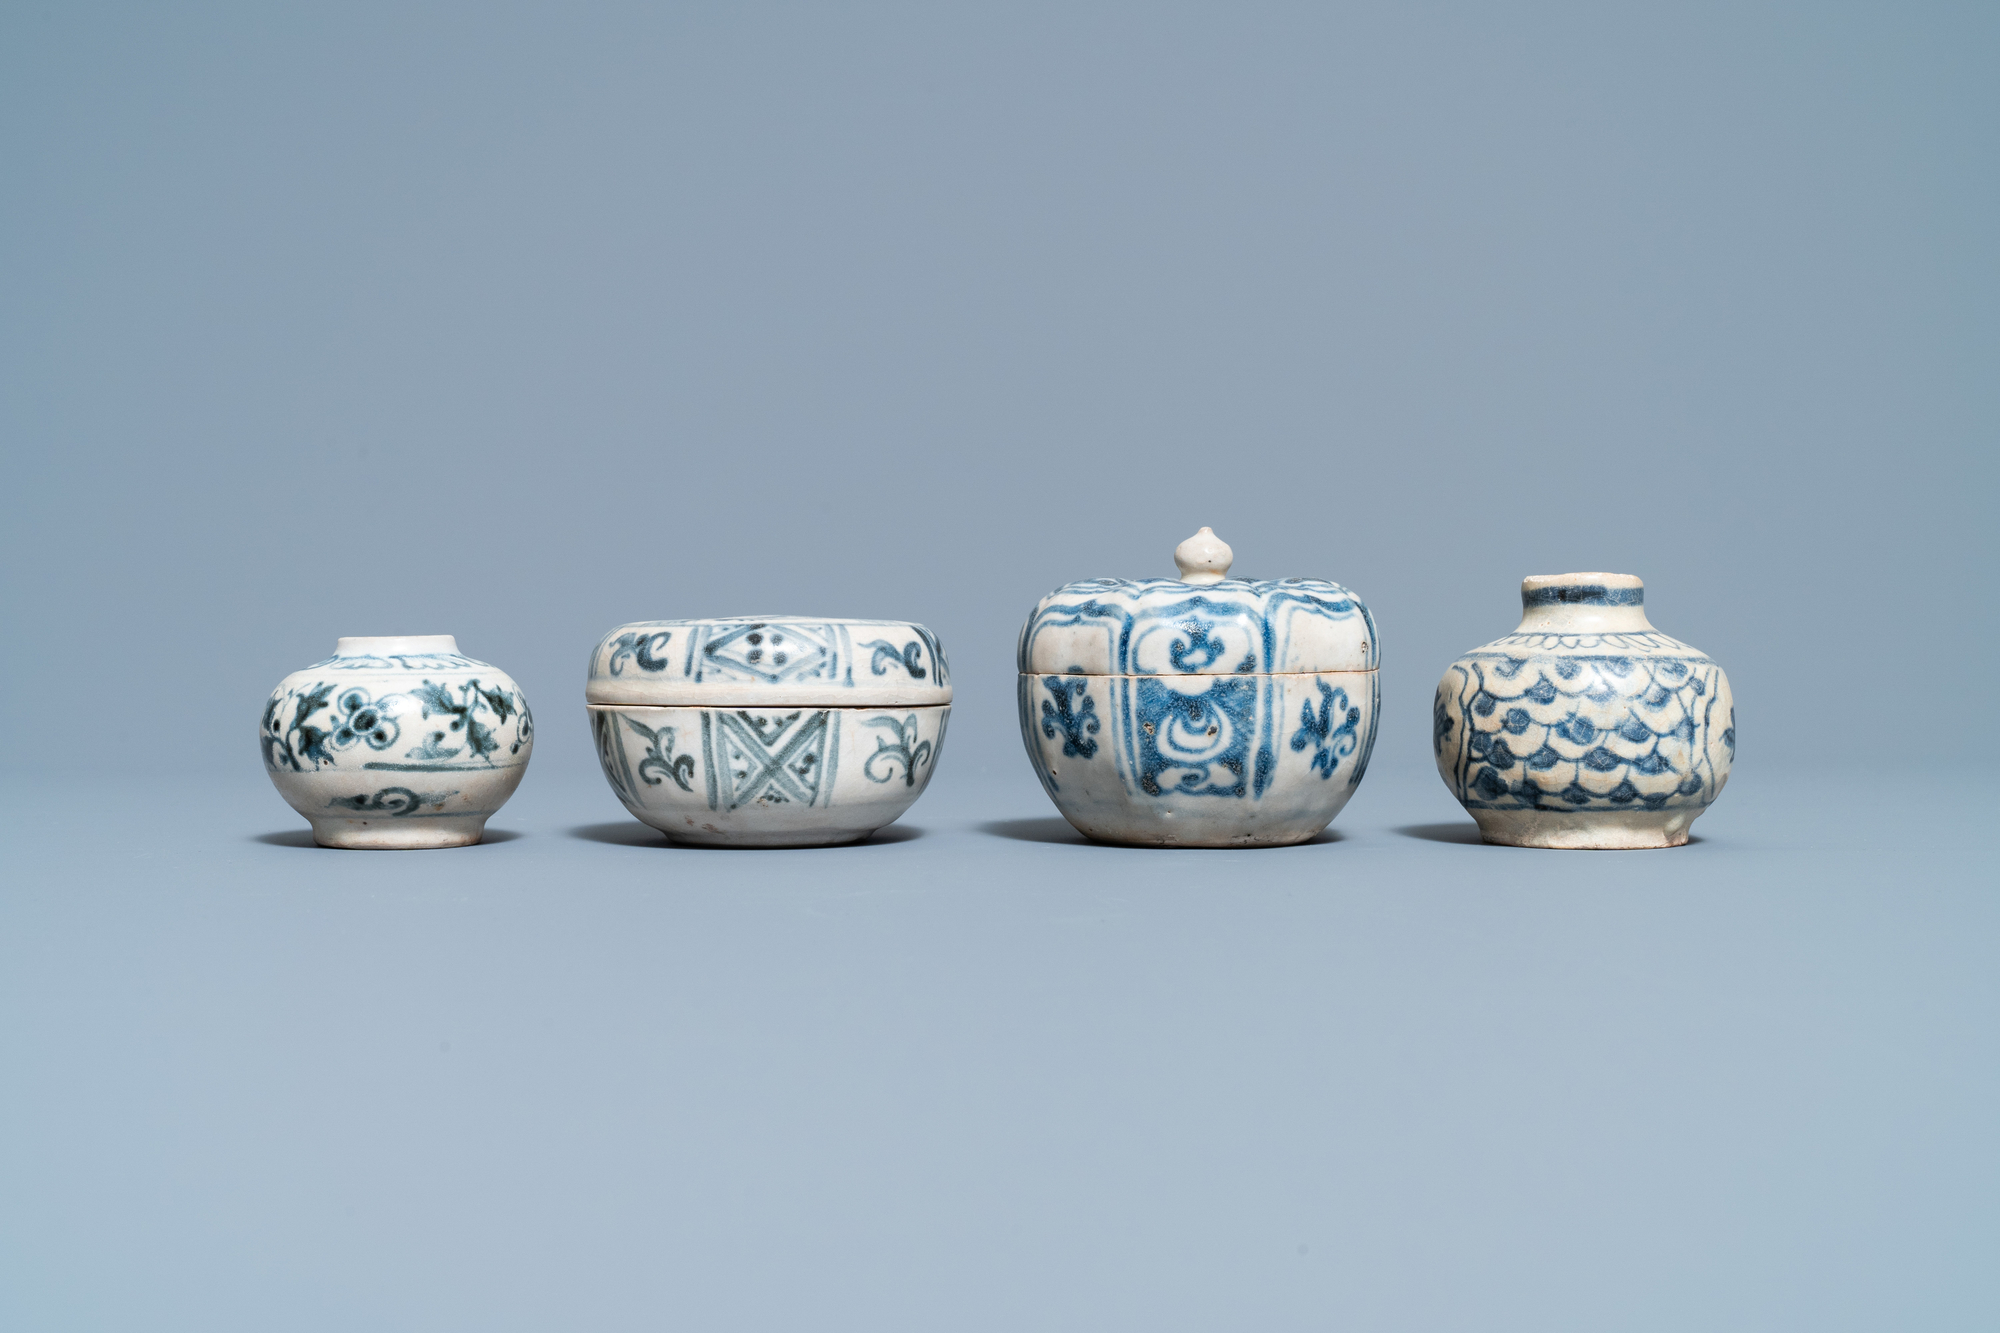 Four blue and white Vietnamese or Annamese ceramics and a Chinese jarlet, 15/16th C. - Image 10 of 12